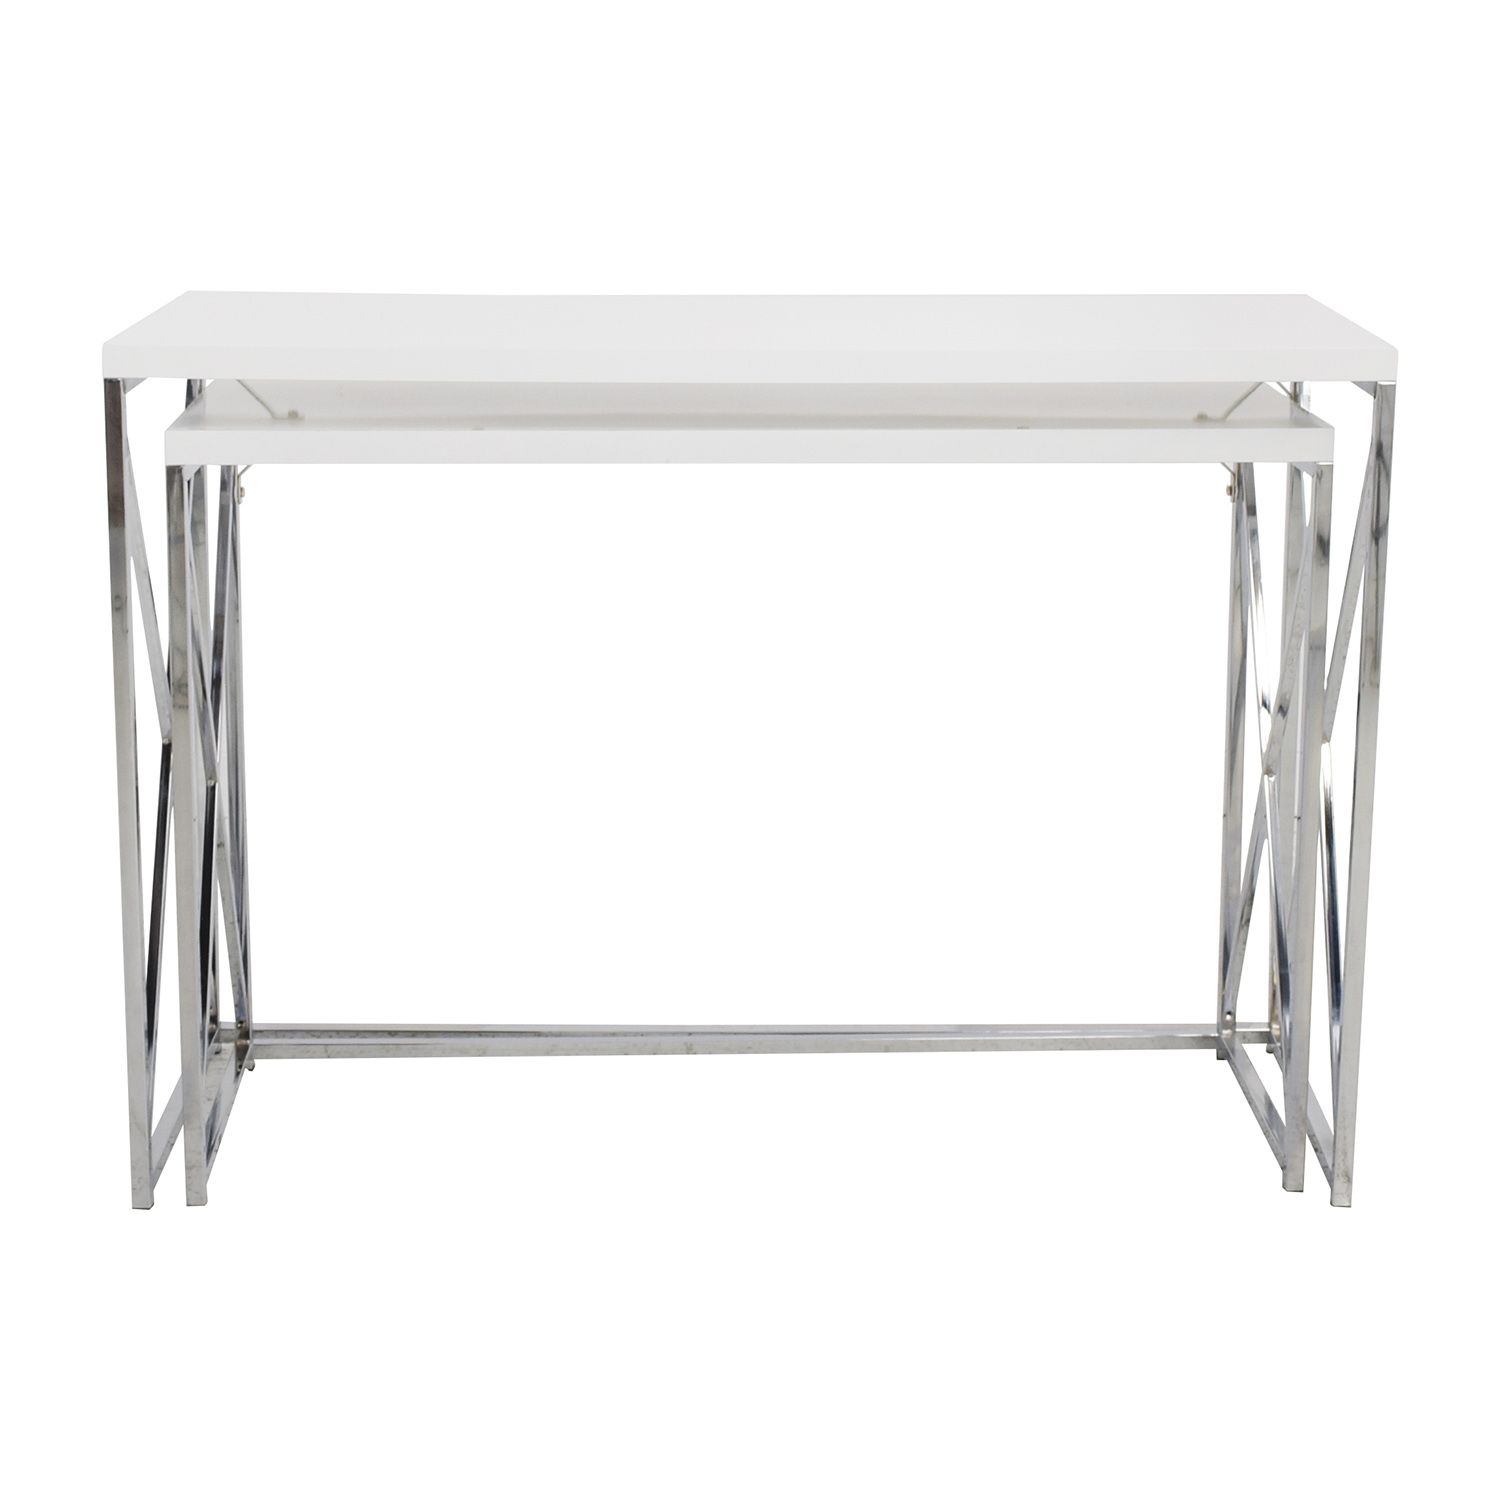 Monarch Specialties Monarch Specialties White and Chrome Nesting Console Tables price